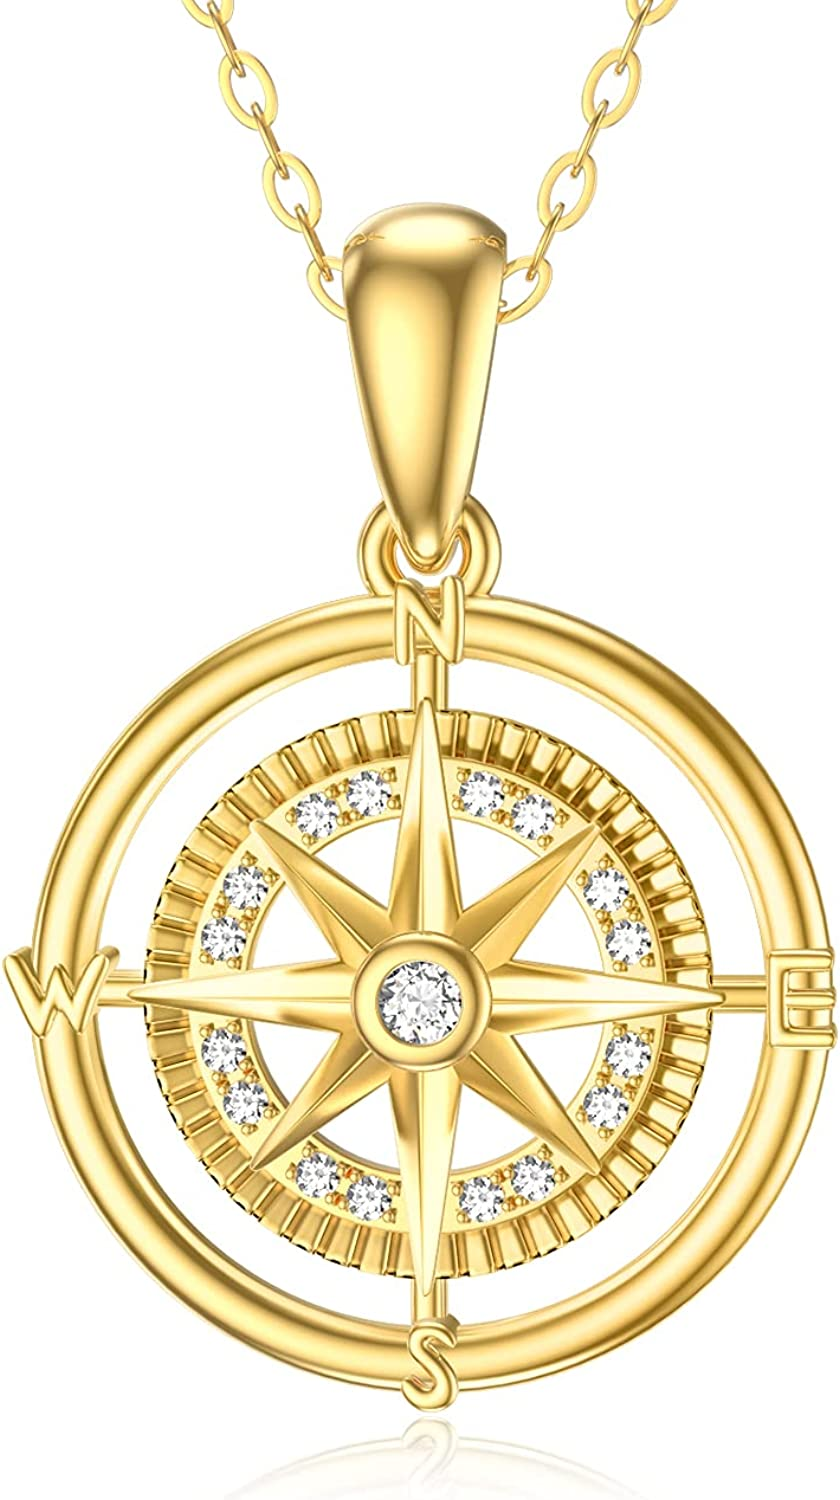 SISGEM 14K Real Yellow Gold Compass Dainty Pendant Necklace with Cubic Zirconia Fine Jewelry Birthday Present for Women Girls,16+2 Inch